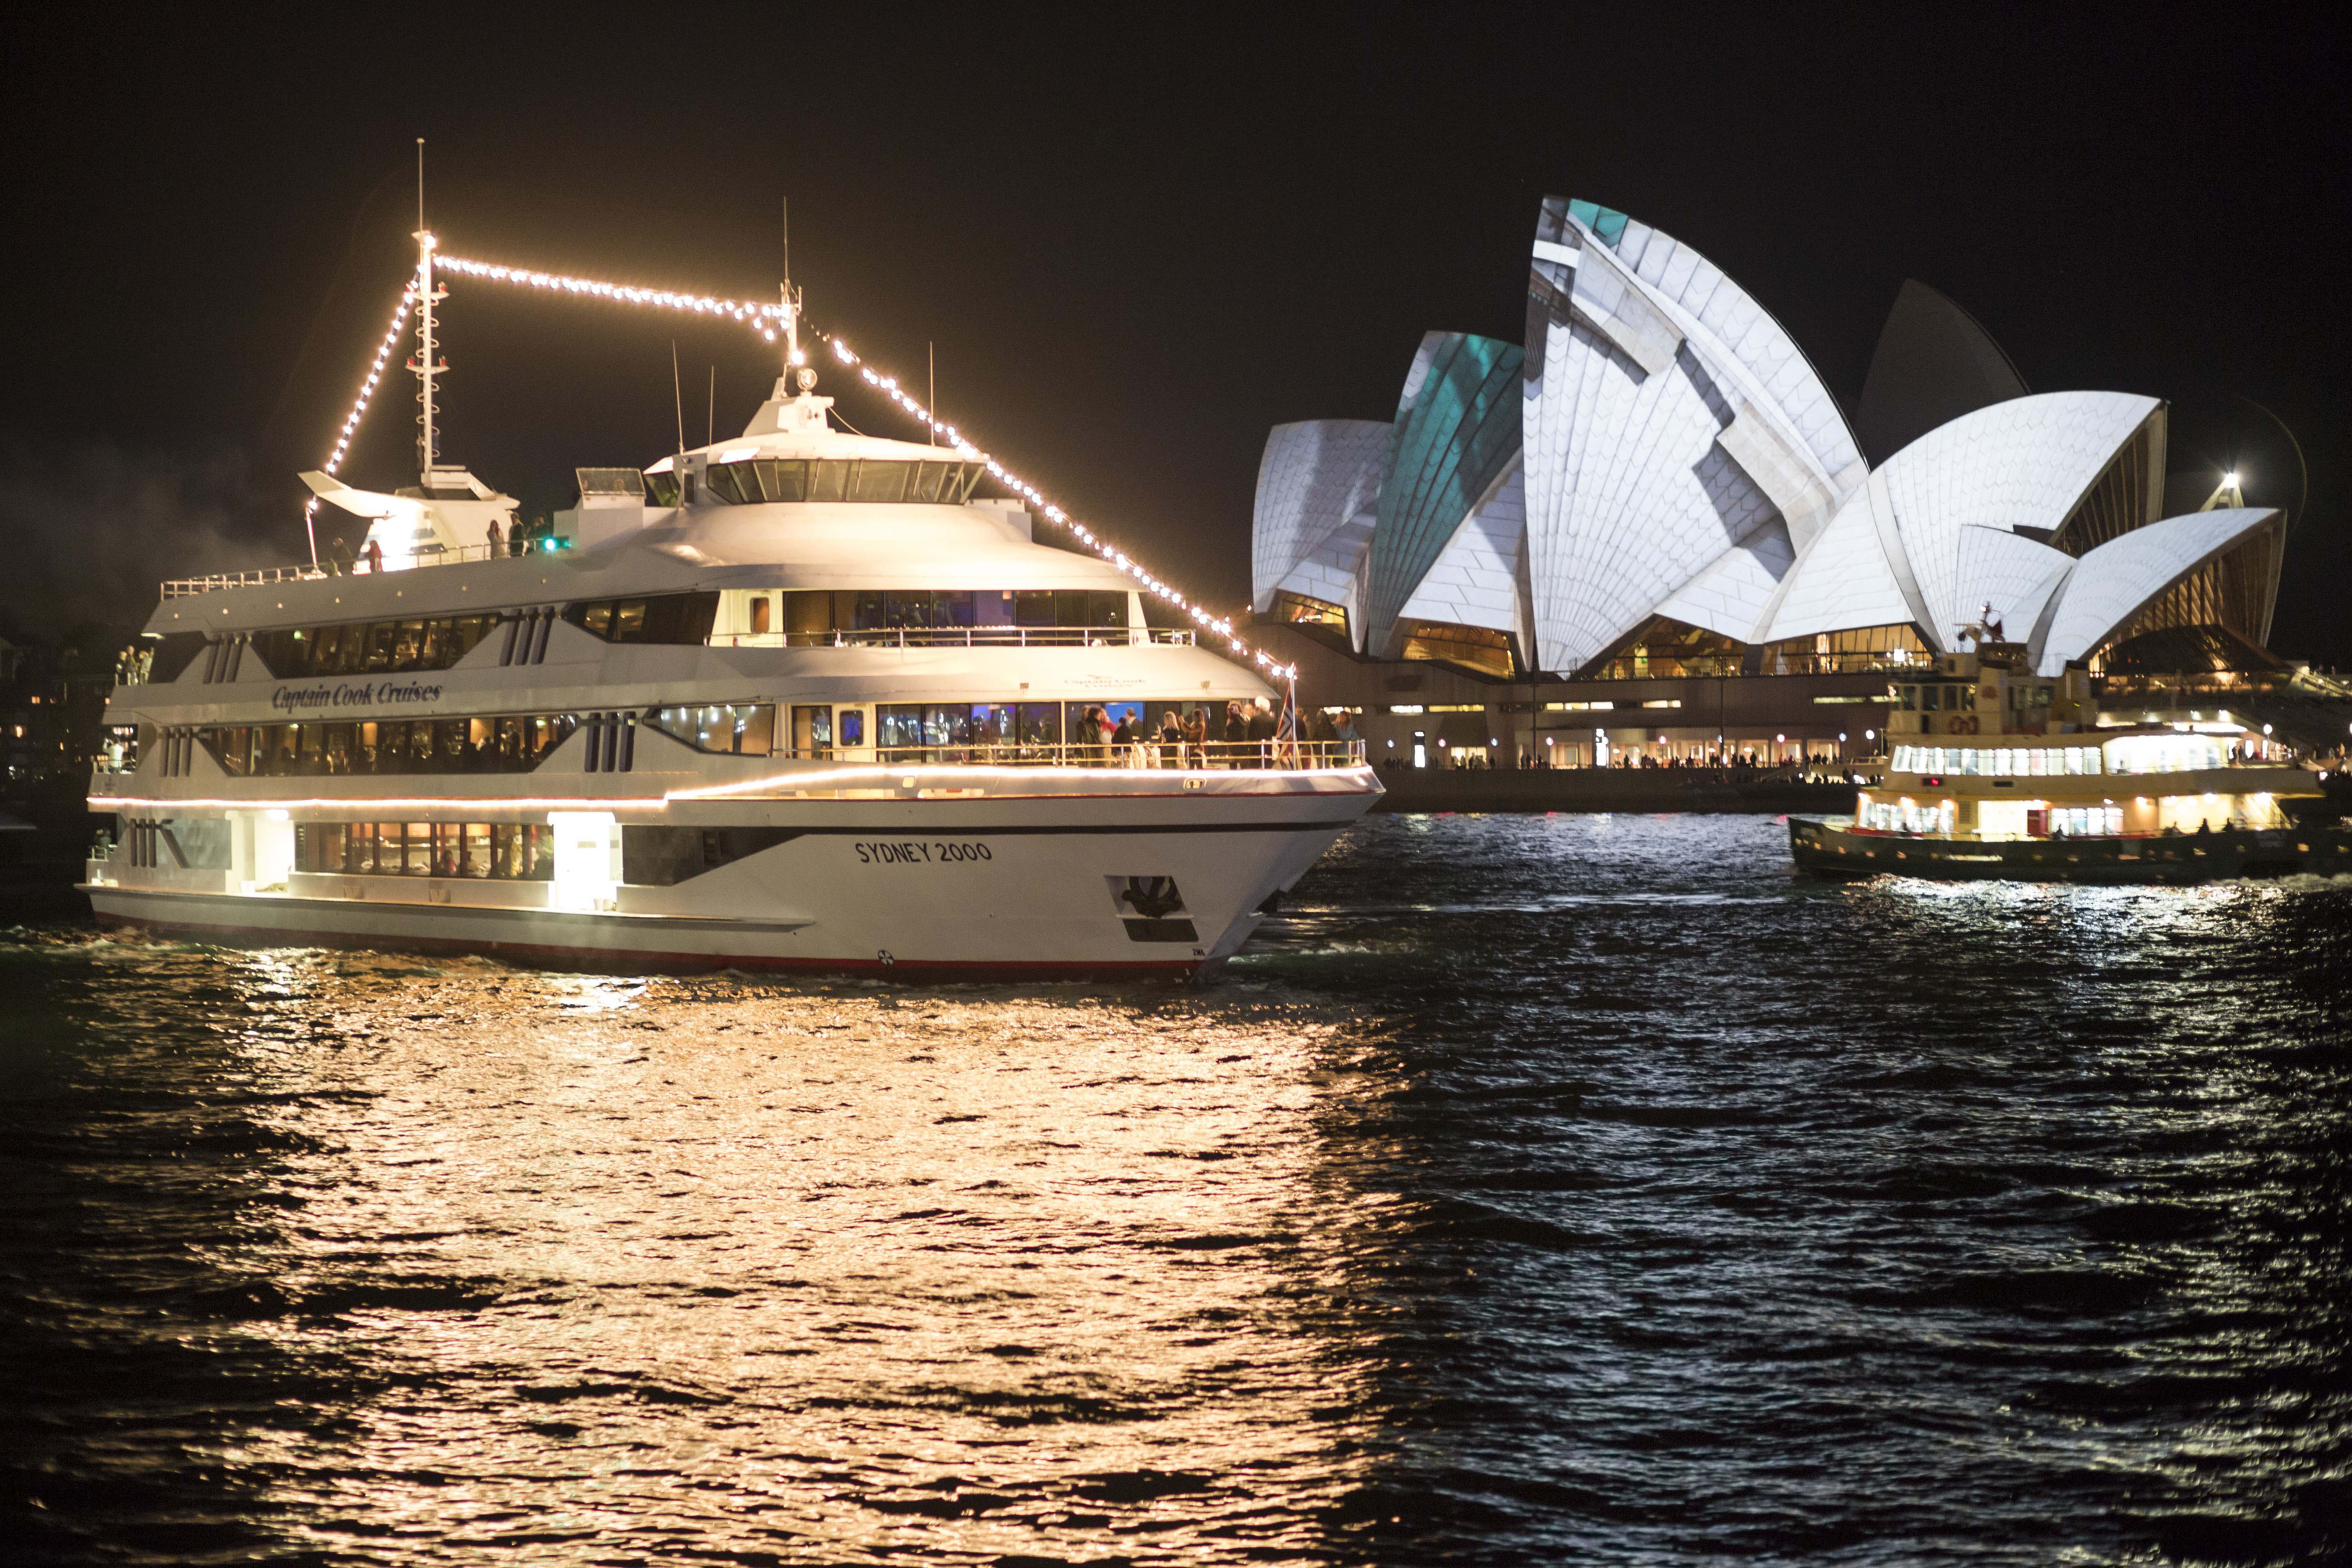 Go whale watching direct from Sydney Harbour. Fantastic whale watching cruises for all. Book today online for an amazing life time experience and use the promo code 'Earlybird' to receive 50% off! offer valid until 31st May,